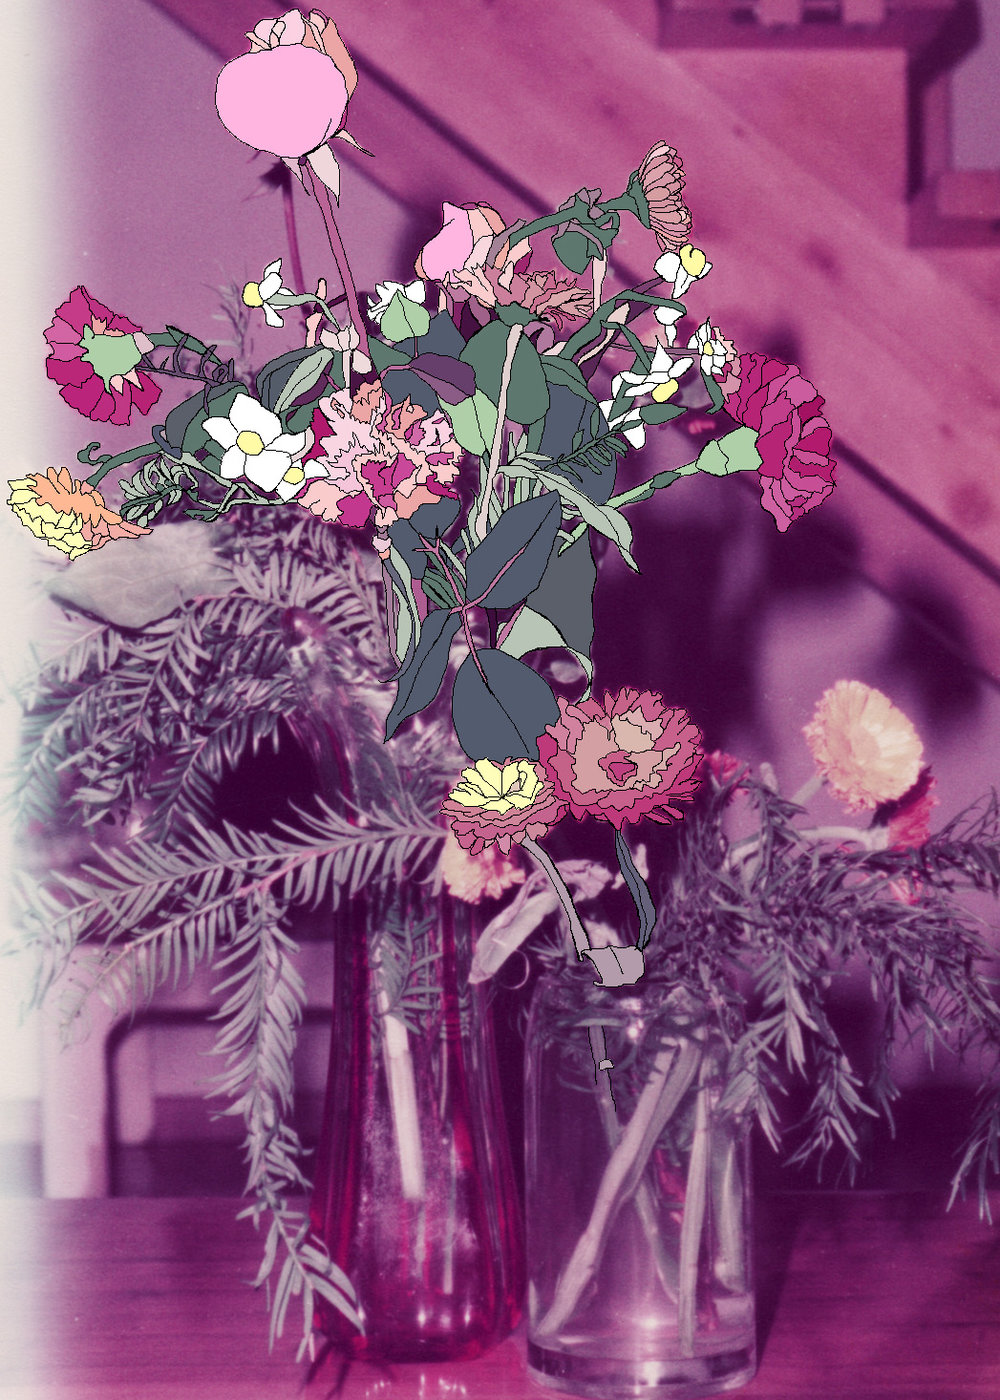 (single work), Flowers, archival ink print, 60 x 45 cm, 2011.